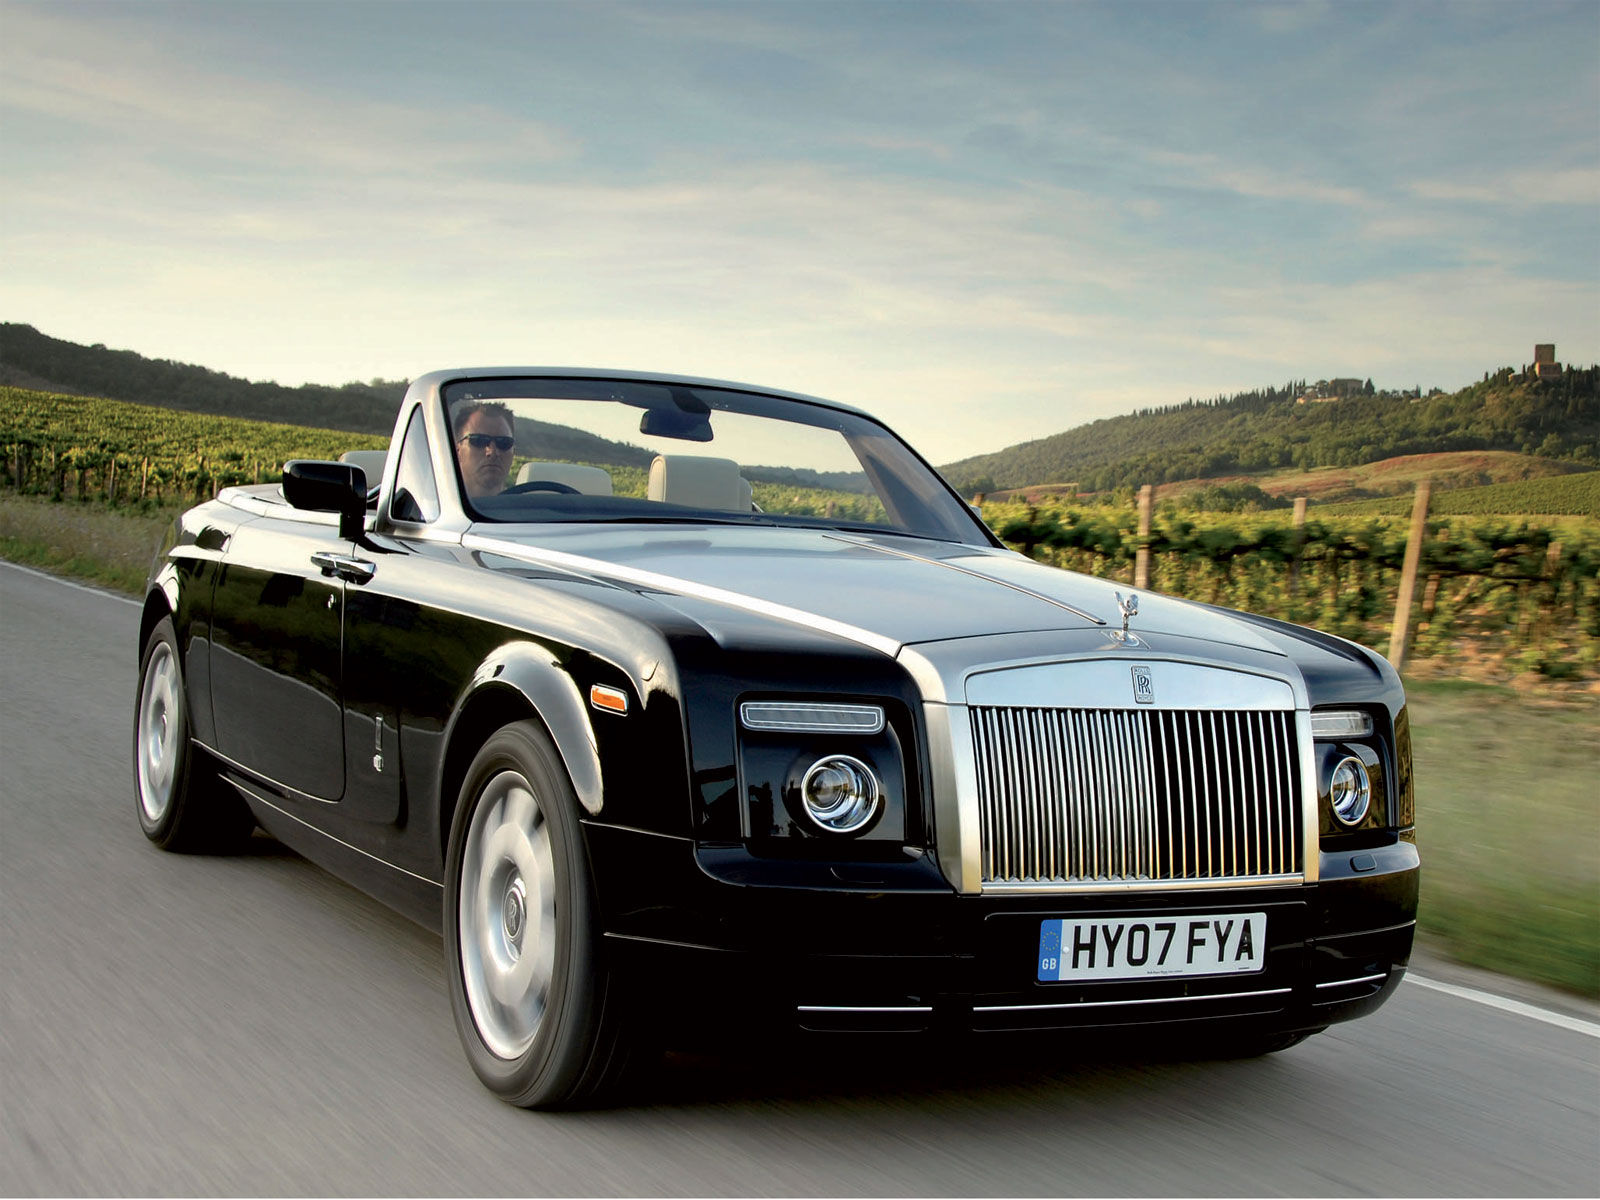 2008 Rolls-Royce Drophead Coupe Convertible picture